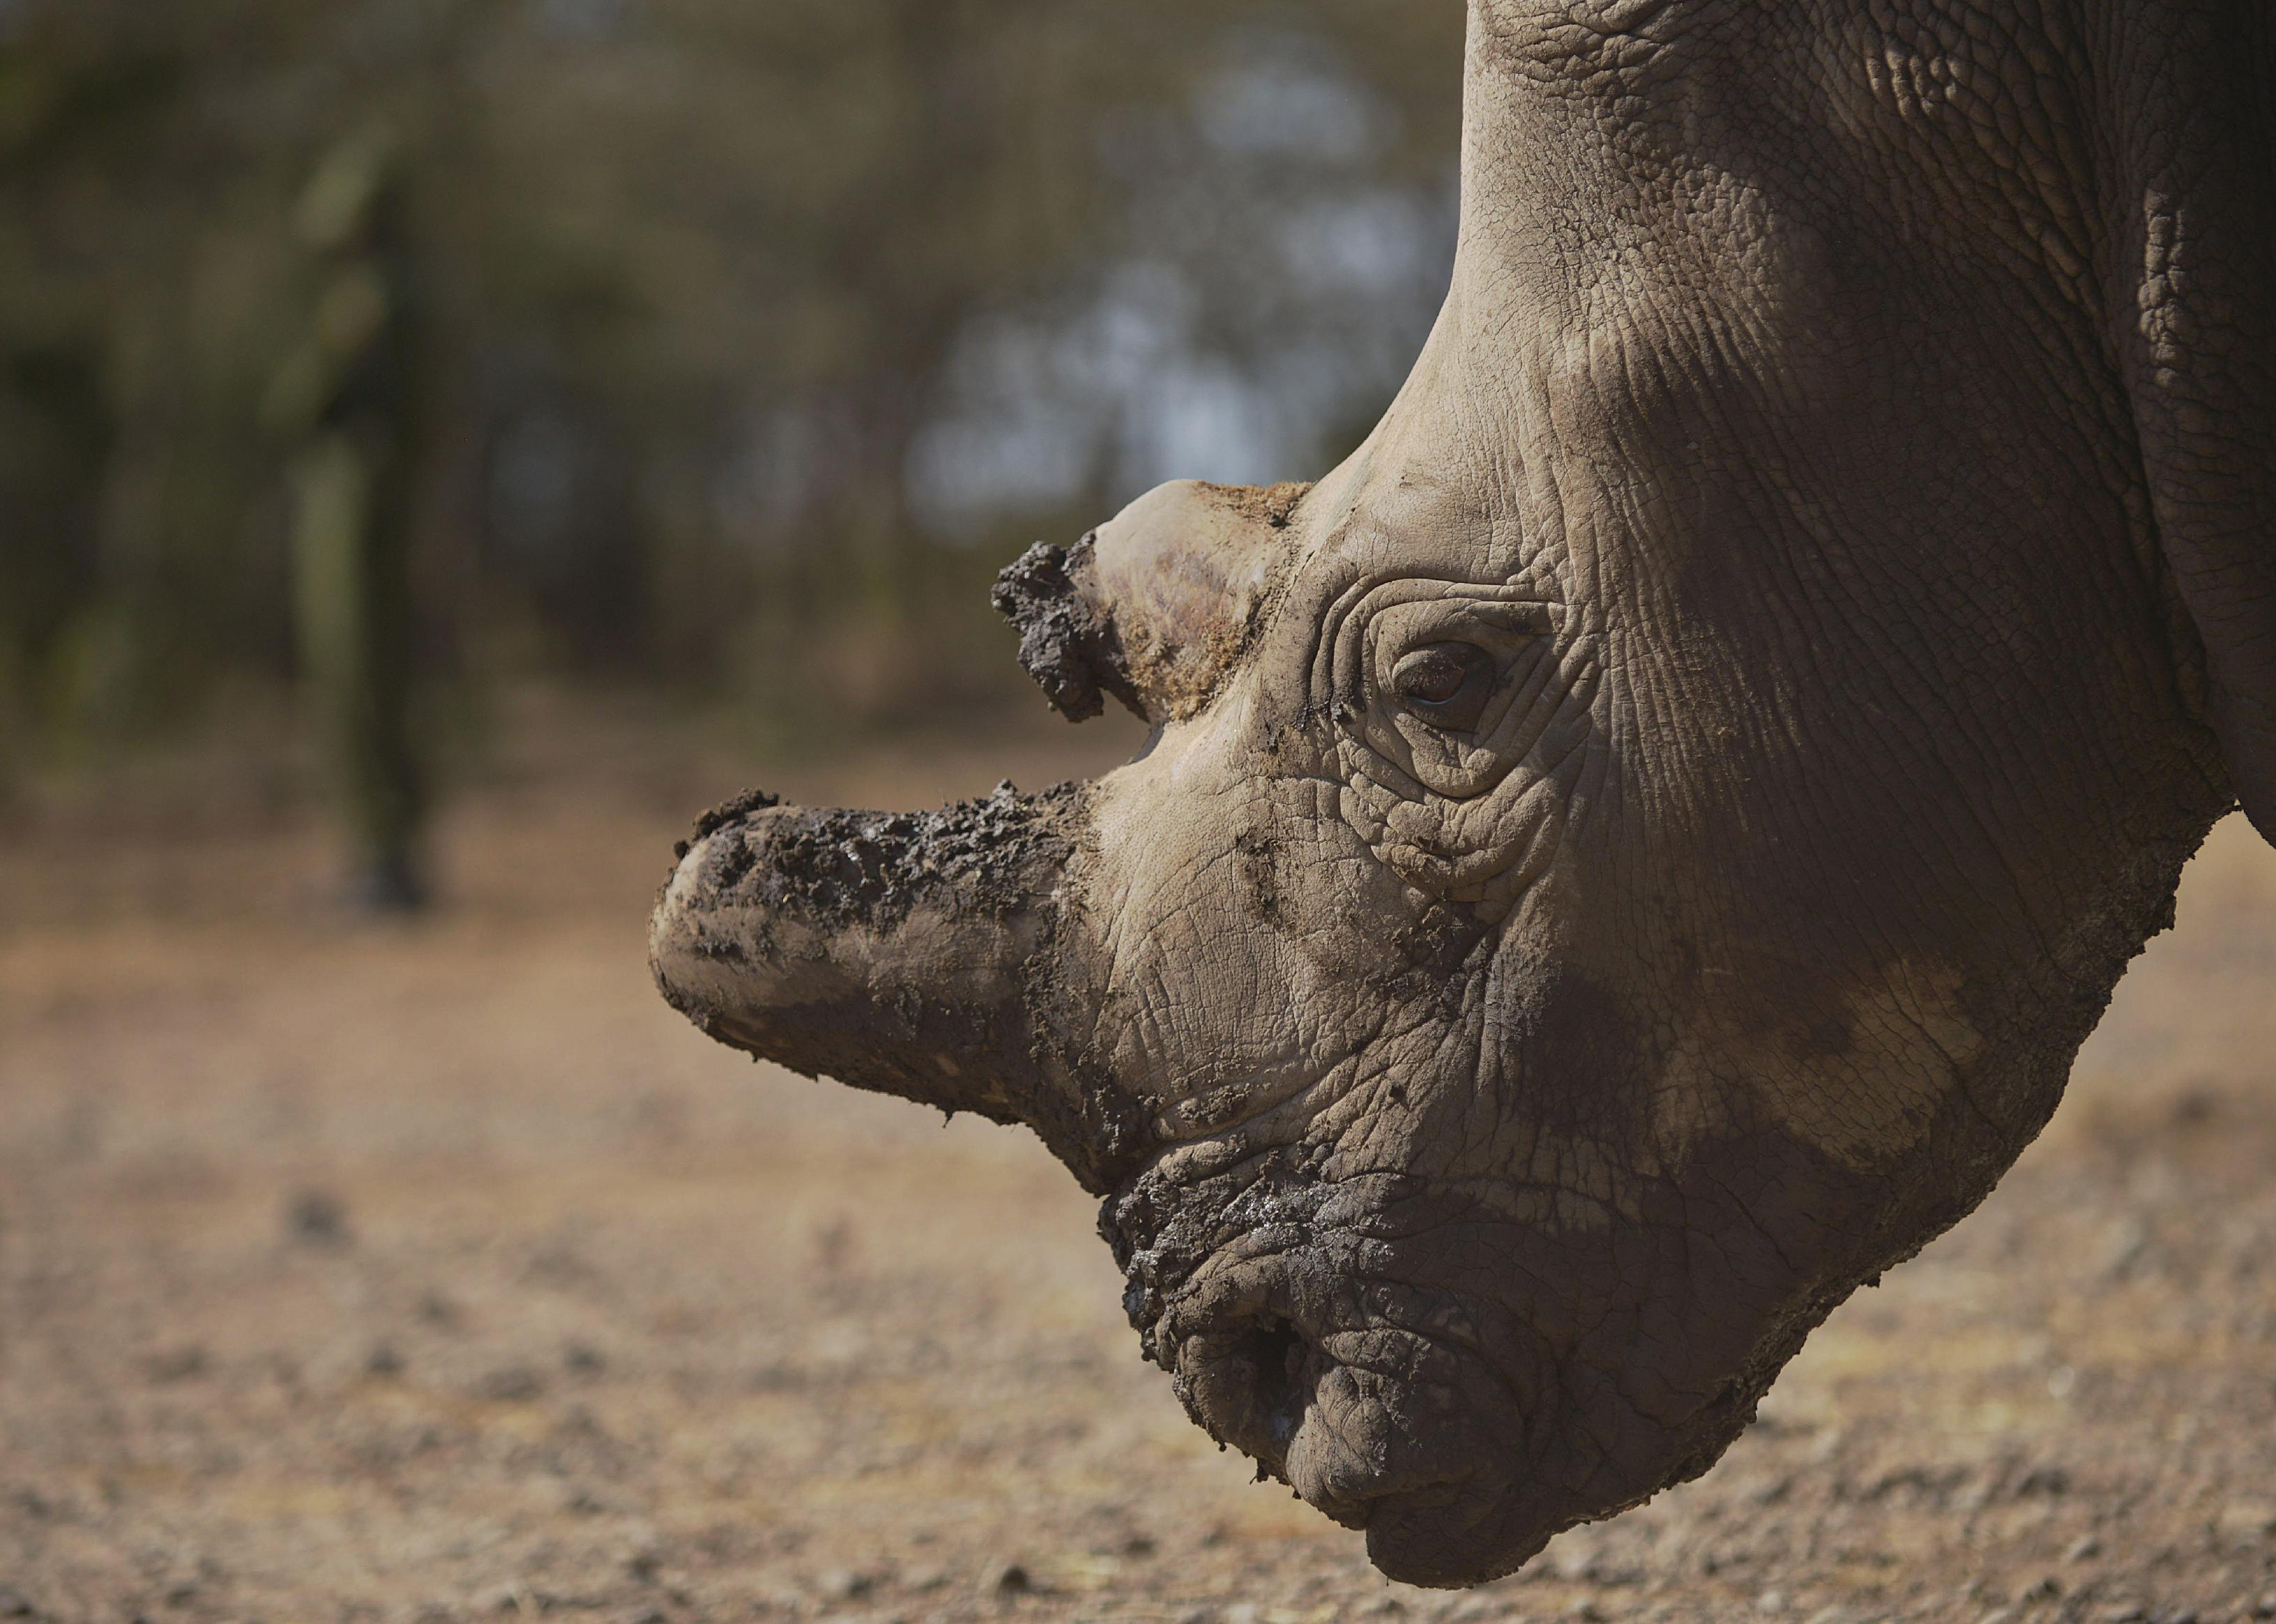 A northern white female rhinoceros at the Ol Pejeta Conservancy, a species scientists hope will stave off extinction thanks to assisted reproduction (AFP Photo/Tony Karumba)